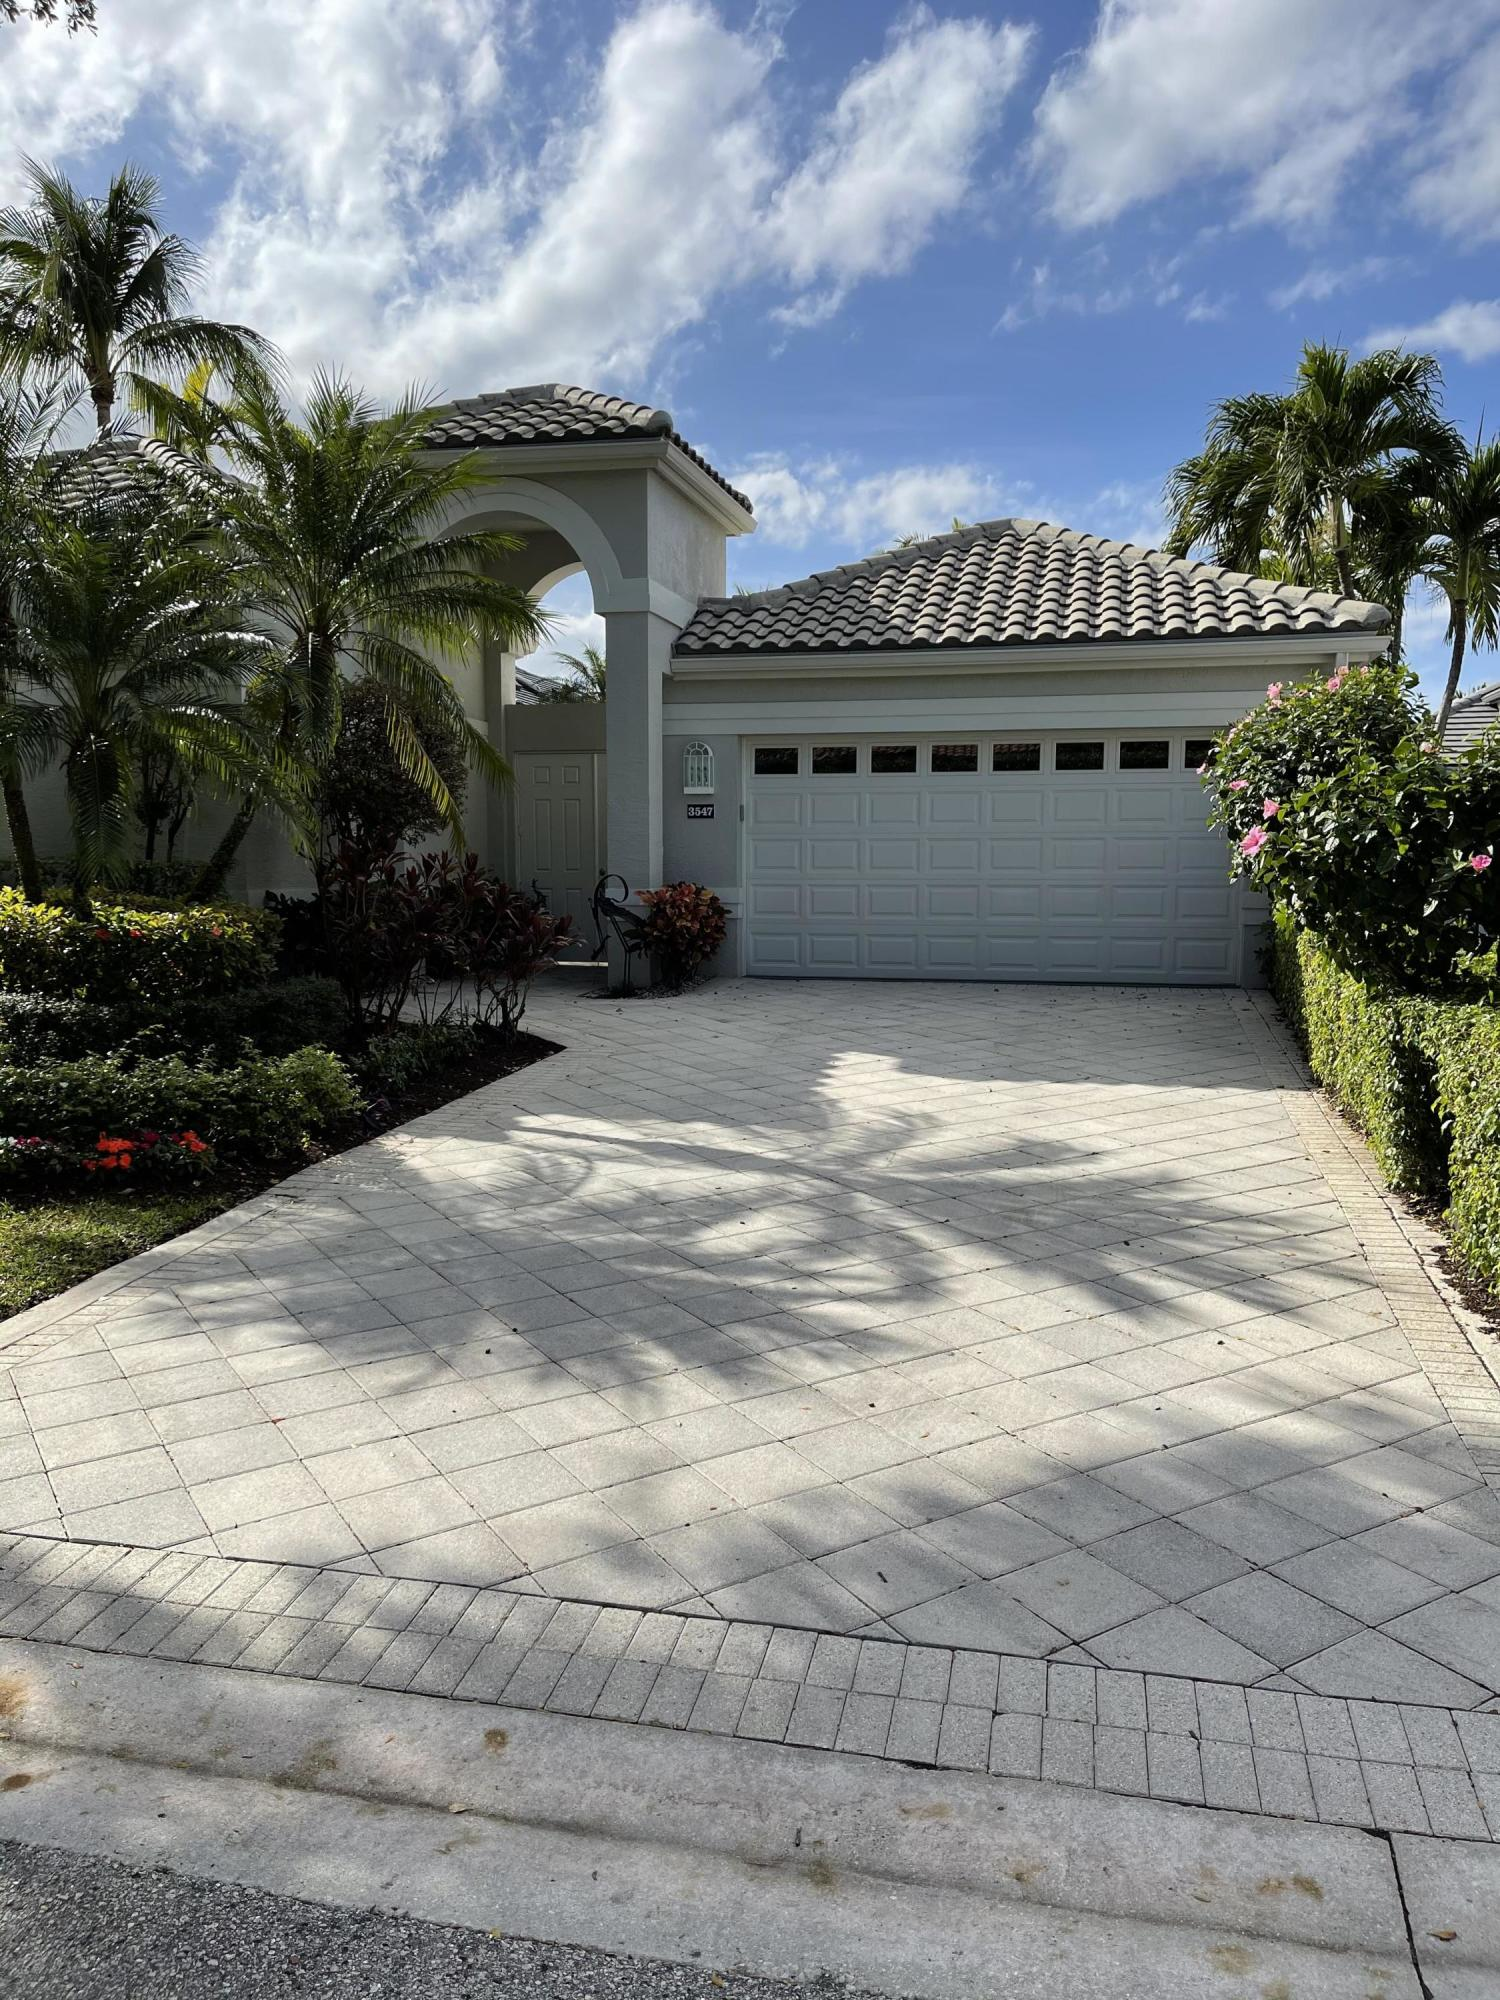 Listing Details for 3547 Clubside Circle Nw, Boca Raton, FL 33496